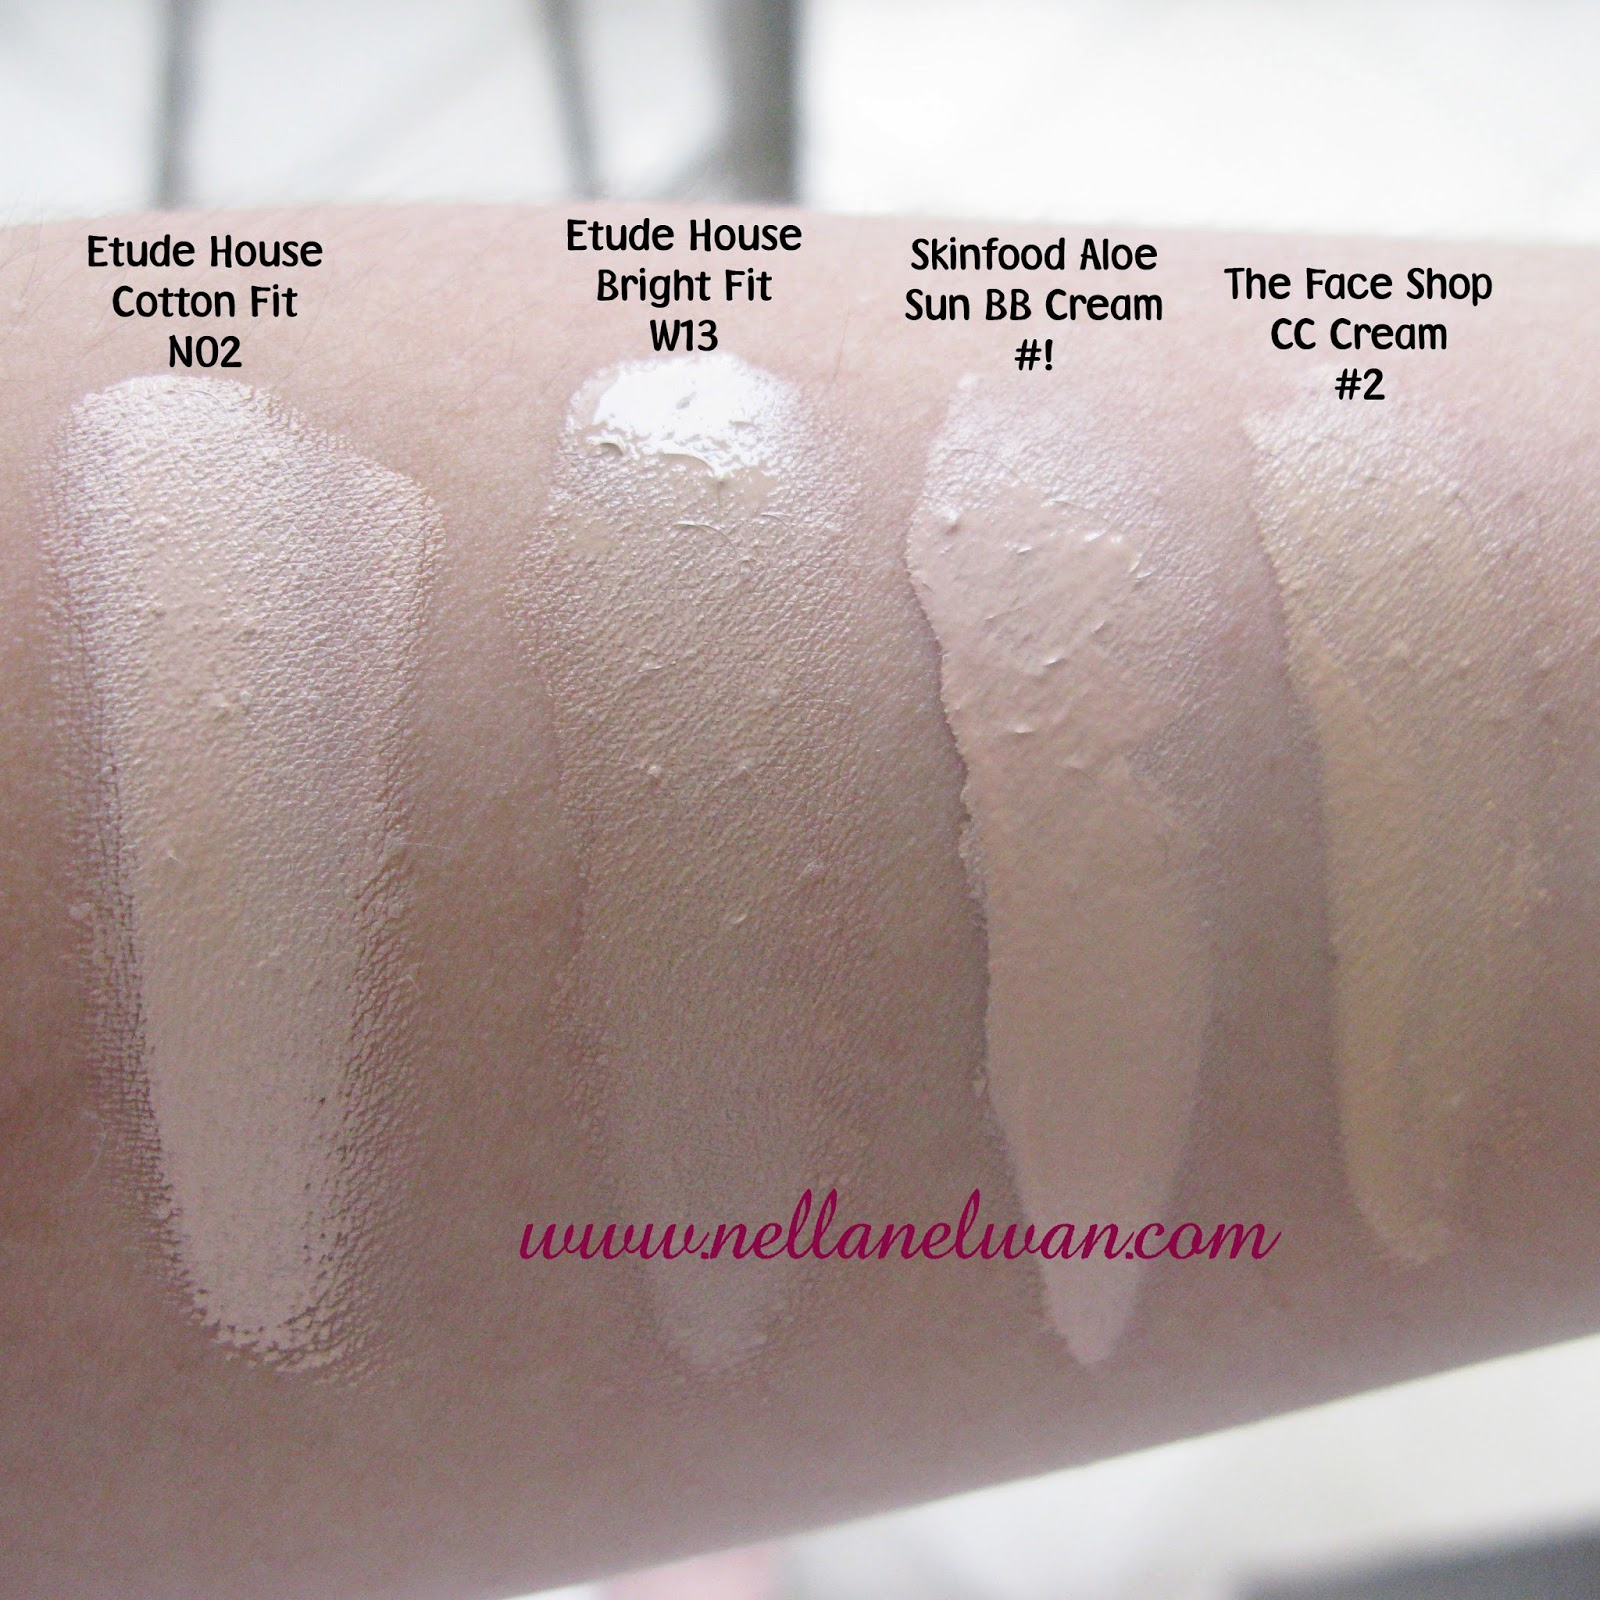 bb cream swatches nellanelwan.com